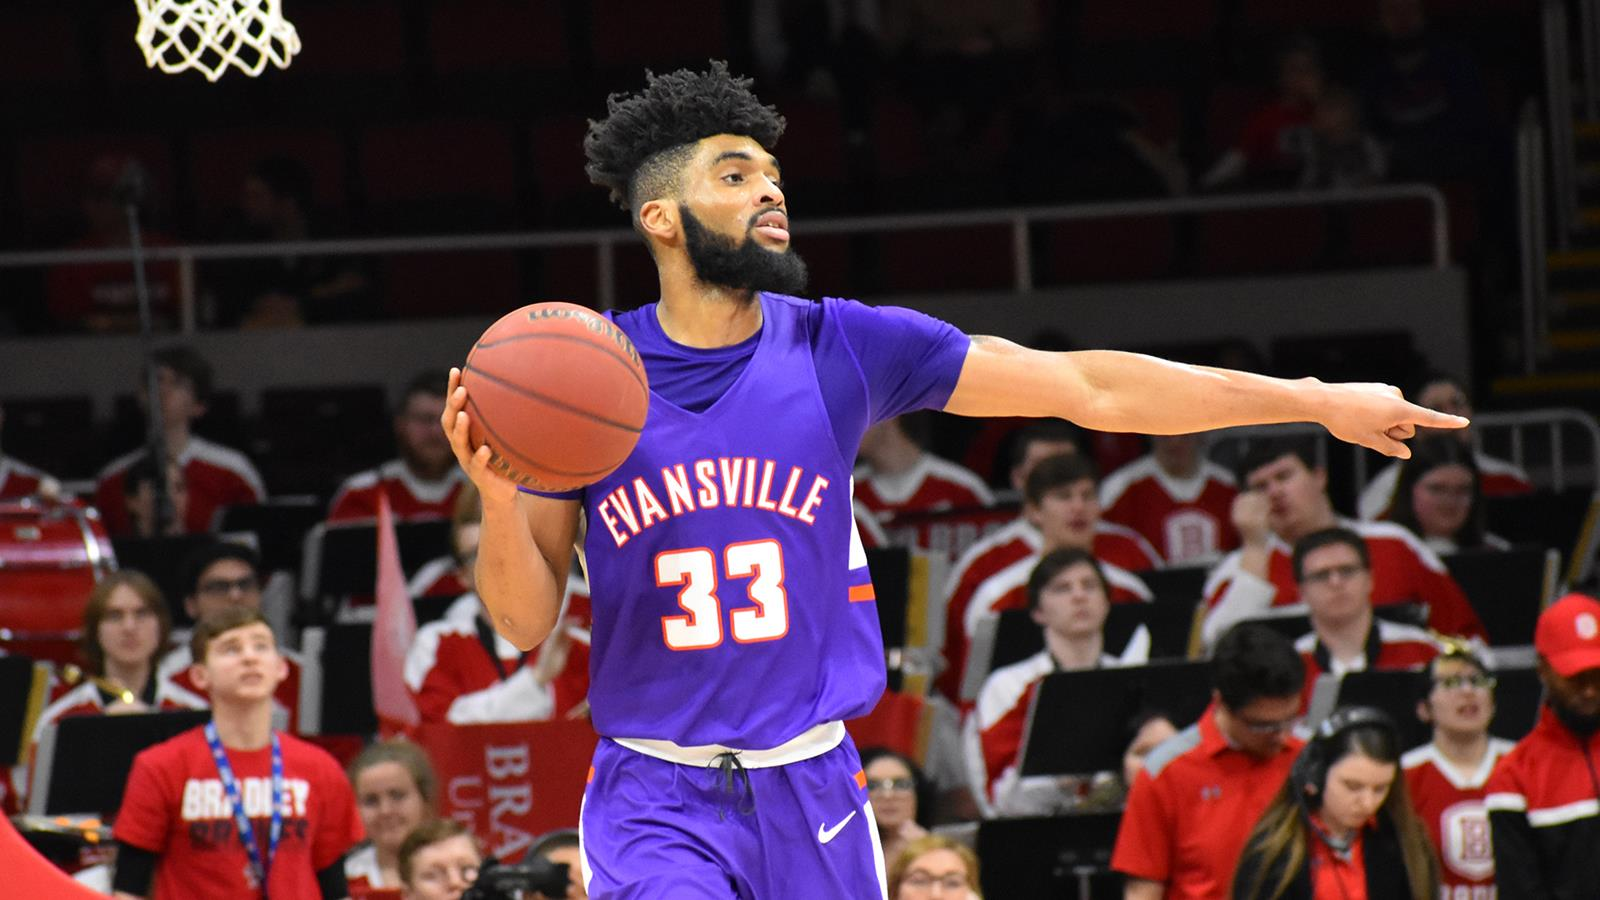 Evansville Stuns No. 1 Kentucky At Rupp As No. 1 Team Loses For Second Time In November